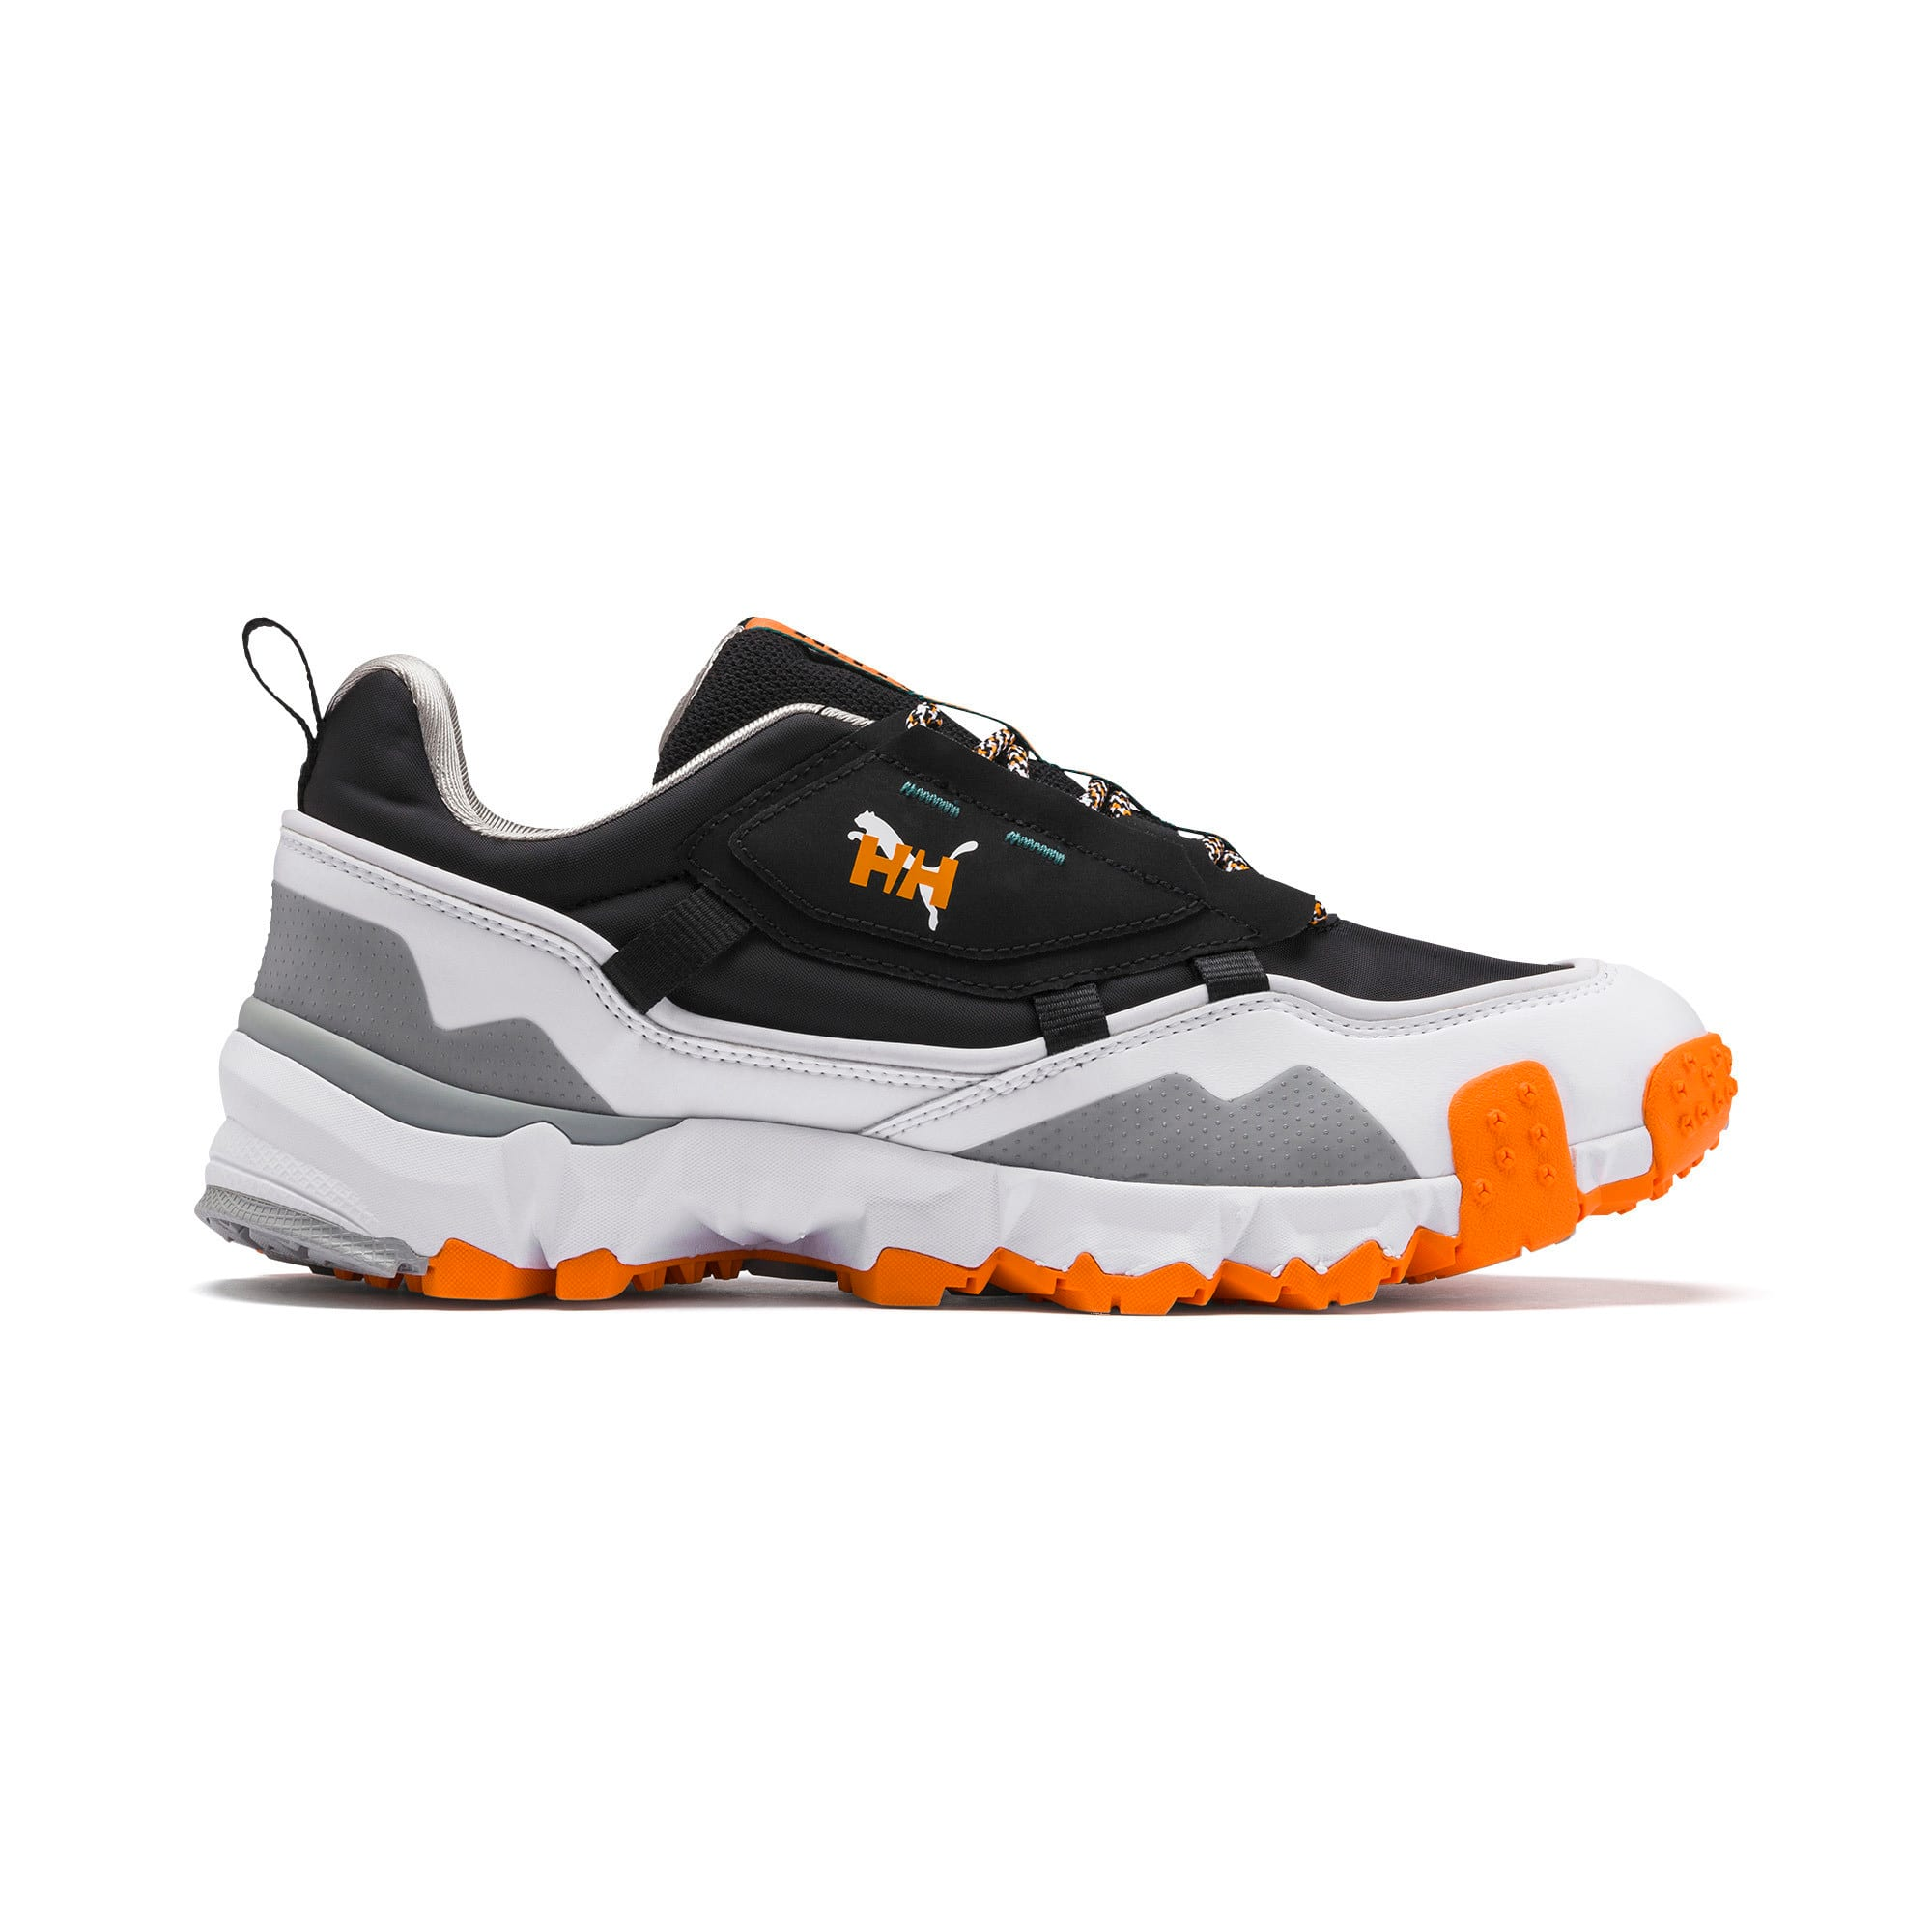 Thumbnail 5 of PUMA x HELLY HANSEN Trailfox Training Shoes, Puma Black, medium